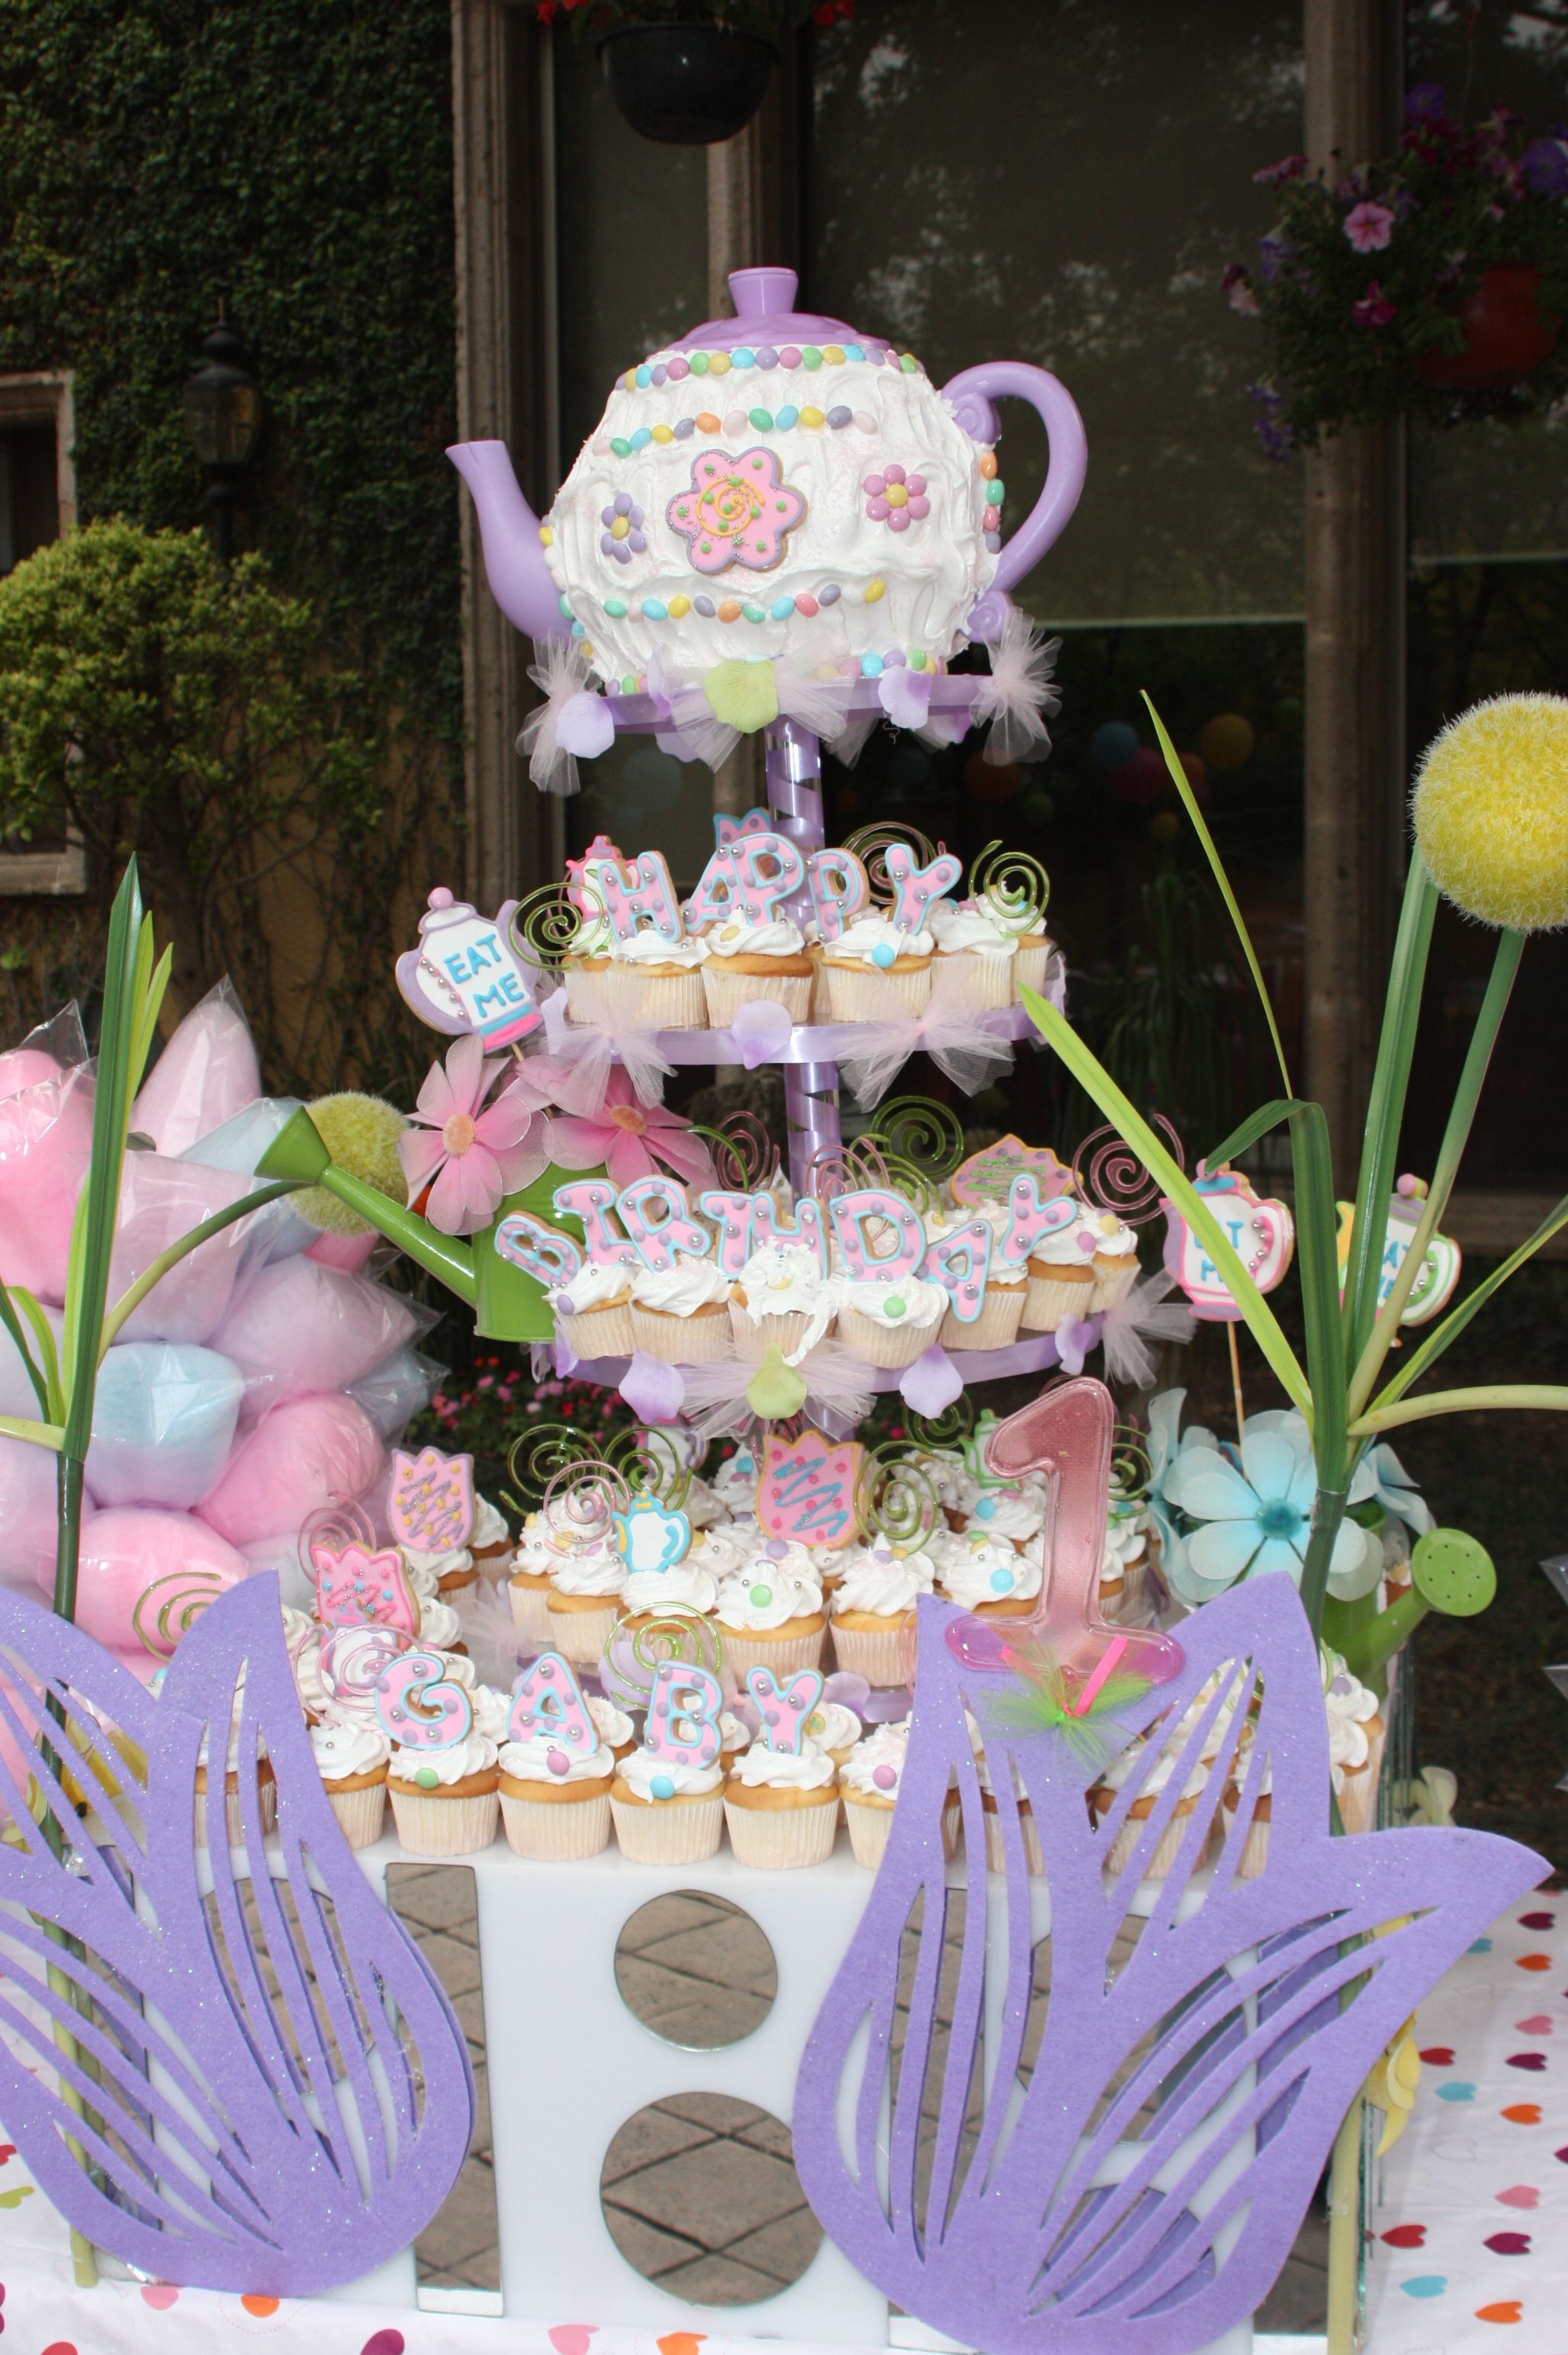 Alice in wonderland tea party cakewhats her theme this